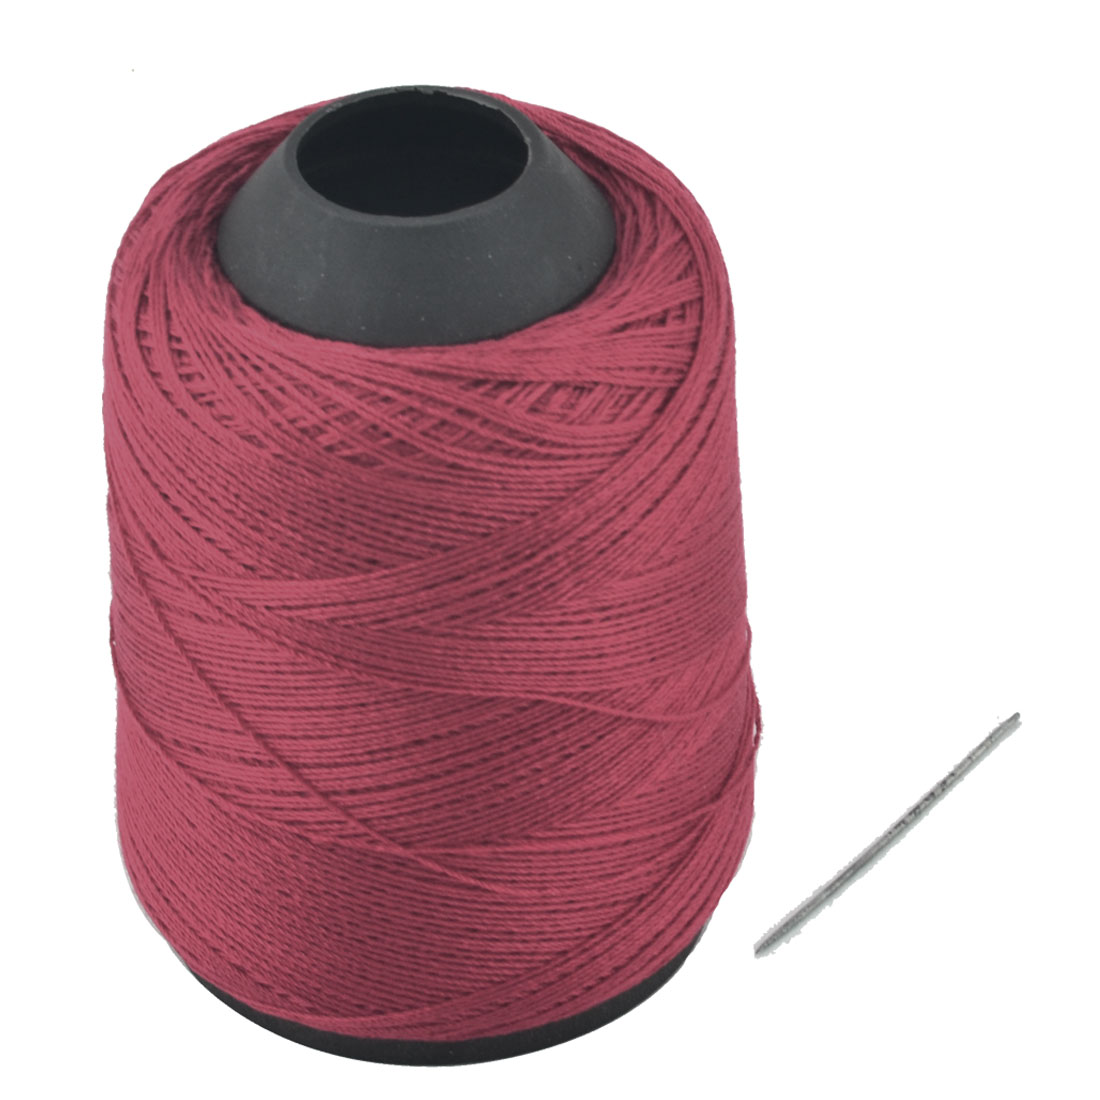 Tailor Polyester Tower Shape Crafting Clothing Sewing Thread Reel Red